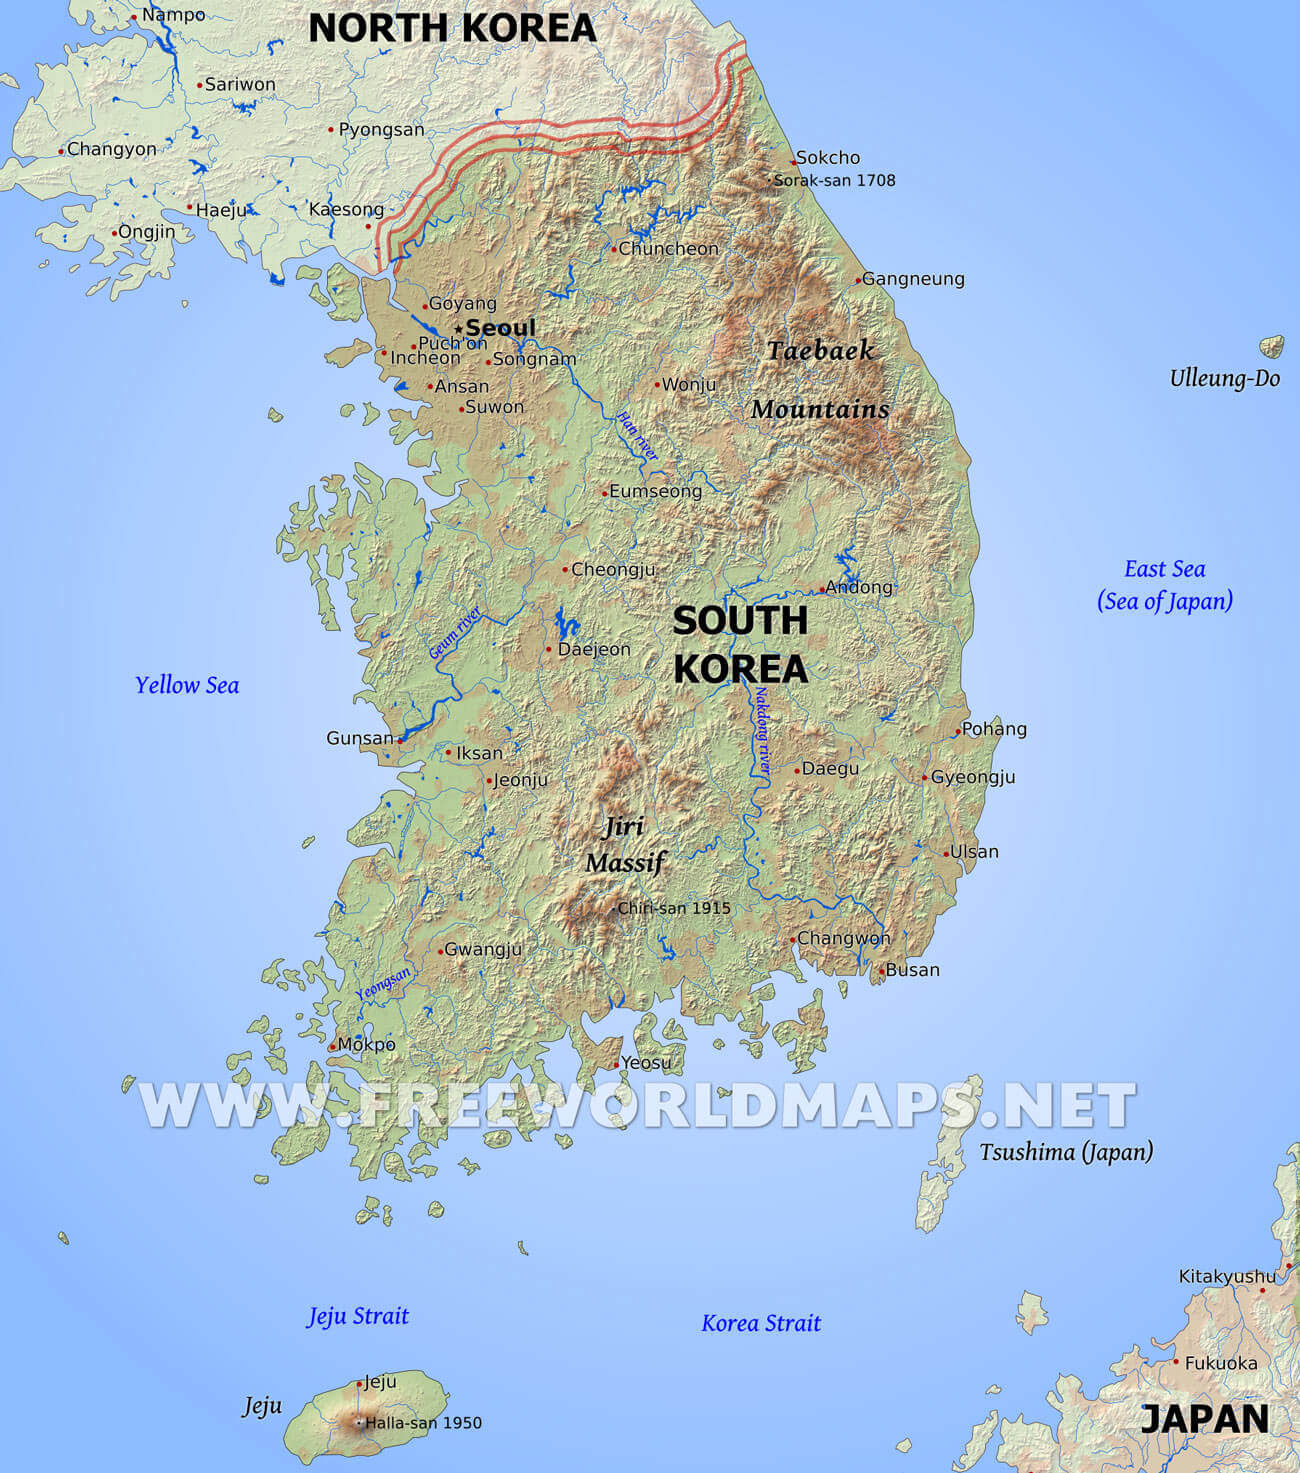 South Korea Physical Map on bahamas map asia, macau map asia, russia map asia, north korea asia, seoul map asia, germany map asia, vietnam map asia, israel map asia, ukraine map asia, mali map asia, history map asia, qatar map asia, united arab emirates map asia, japan map asia, karakorum map asia, iran map asia, east timor map asia, pyongyang map asia, indonesia map asia, south korea asia,